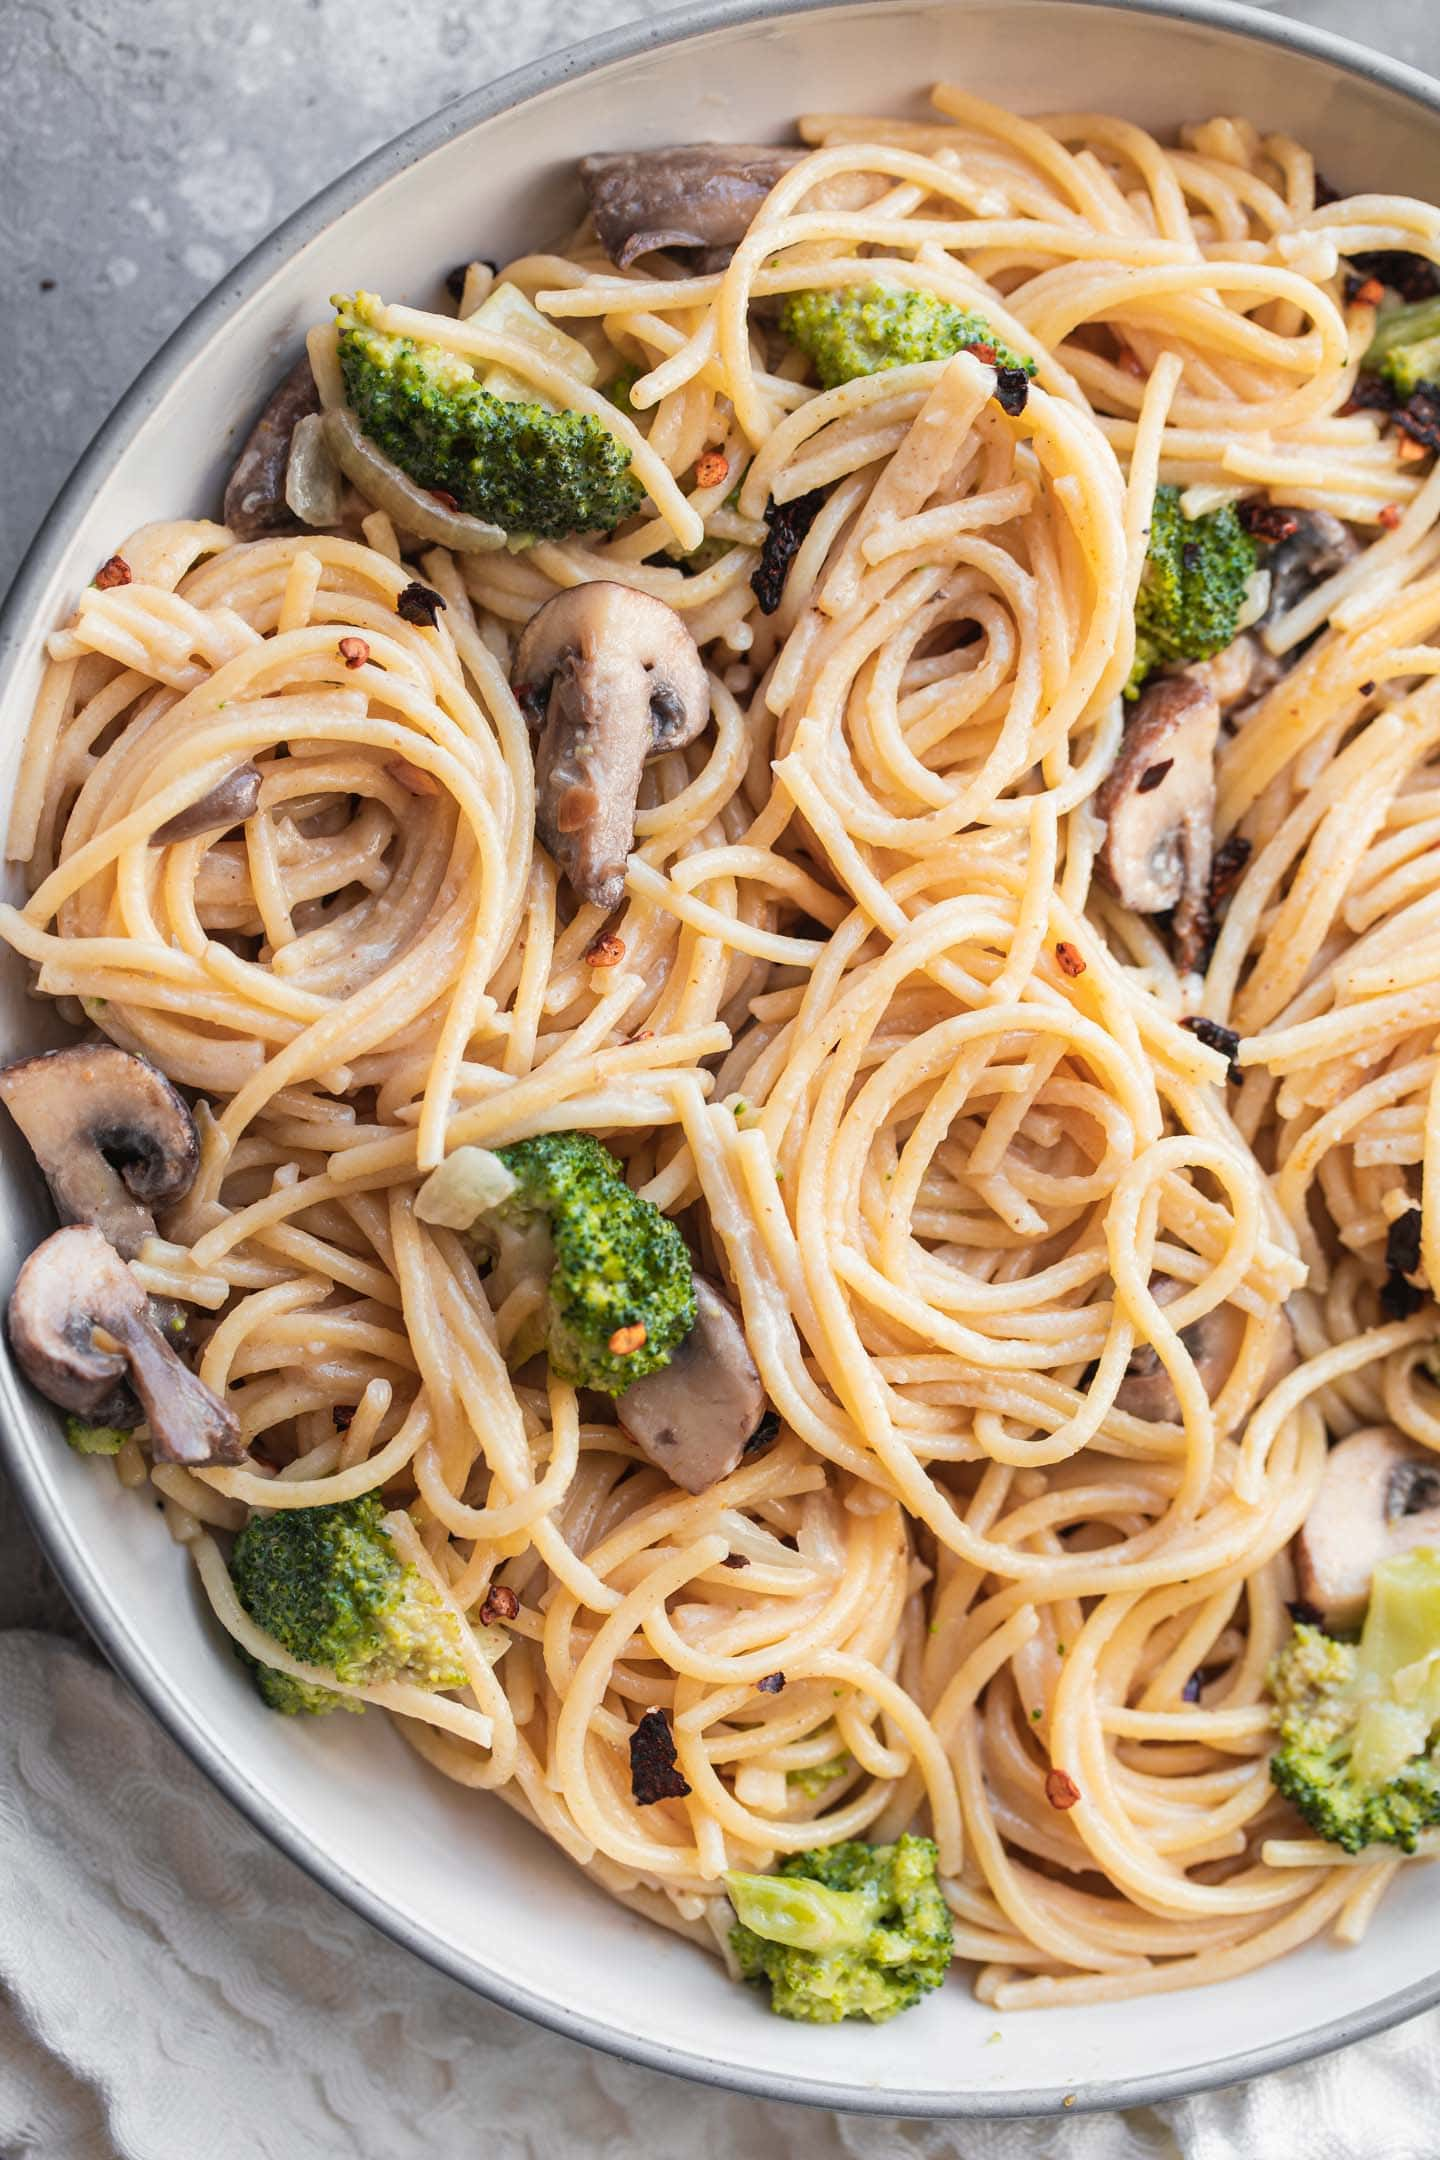 Bowl of coconut pasta with broccoli